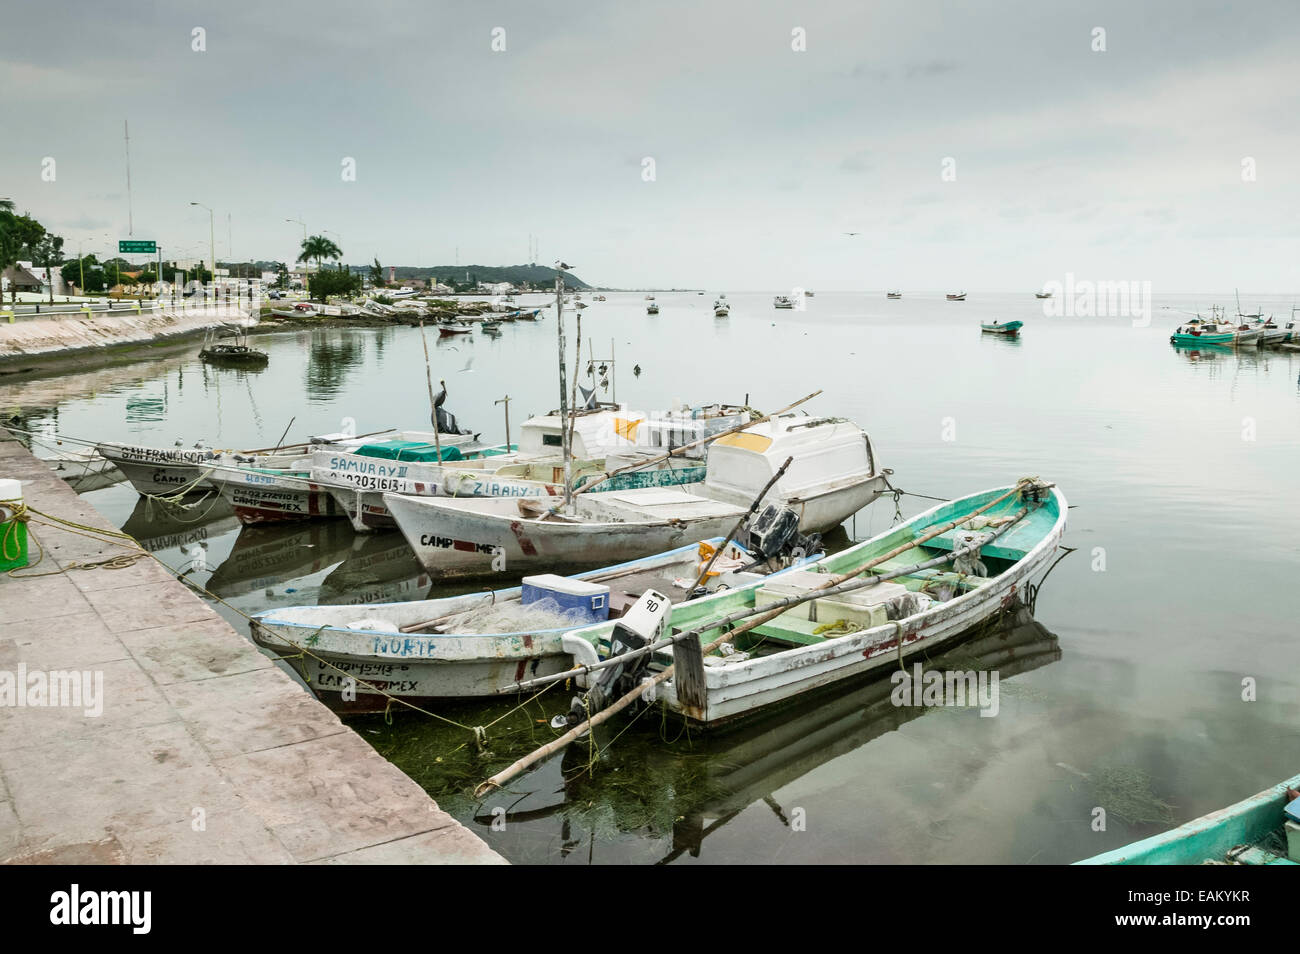 Fishing boats tied up at dock along the Melecon and anchored out on the Bay of Campeche, Campeche, Mexico. - Stock Image